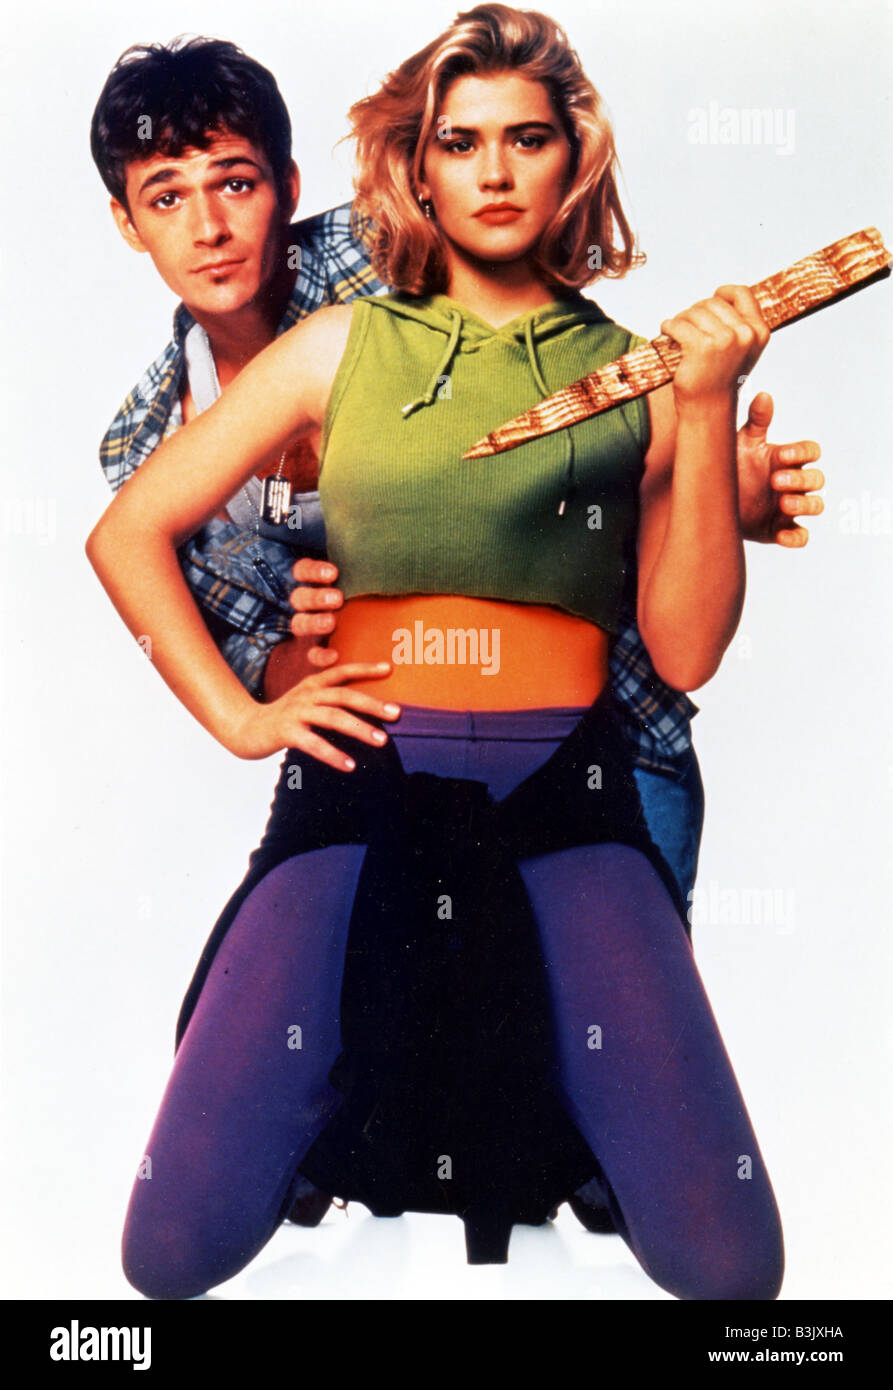 BUFFY THE VAMPIRE SLAYER 1992 TCF film with Kristy Swanson and Luke Perry - Stock Image